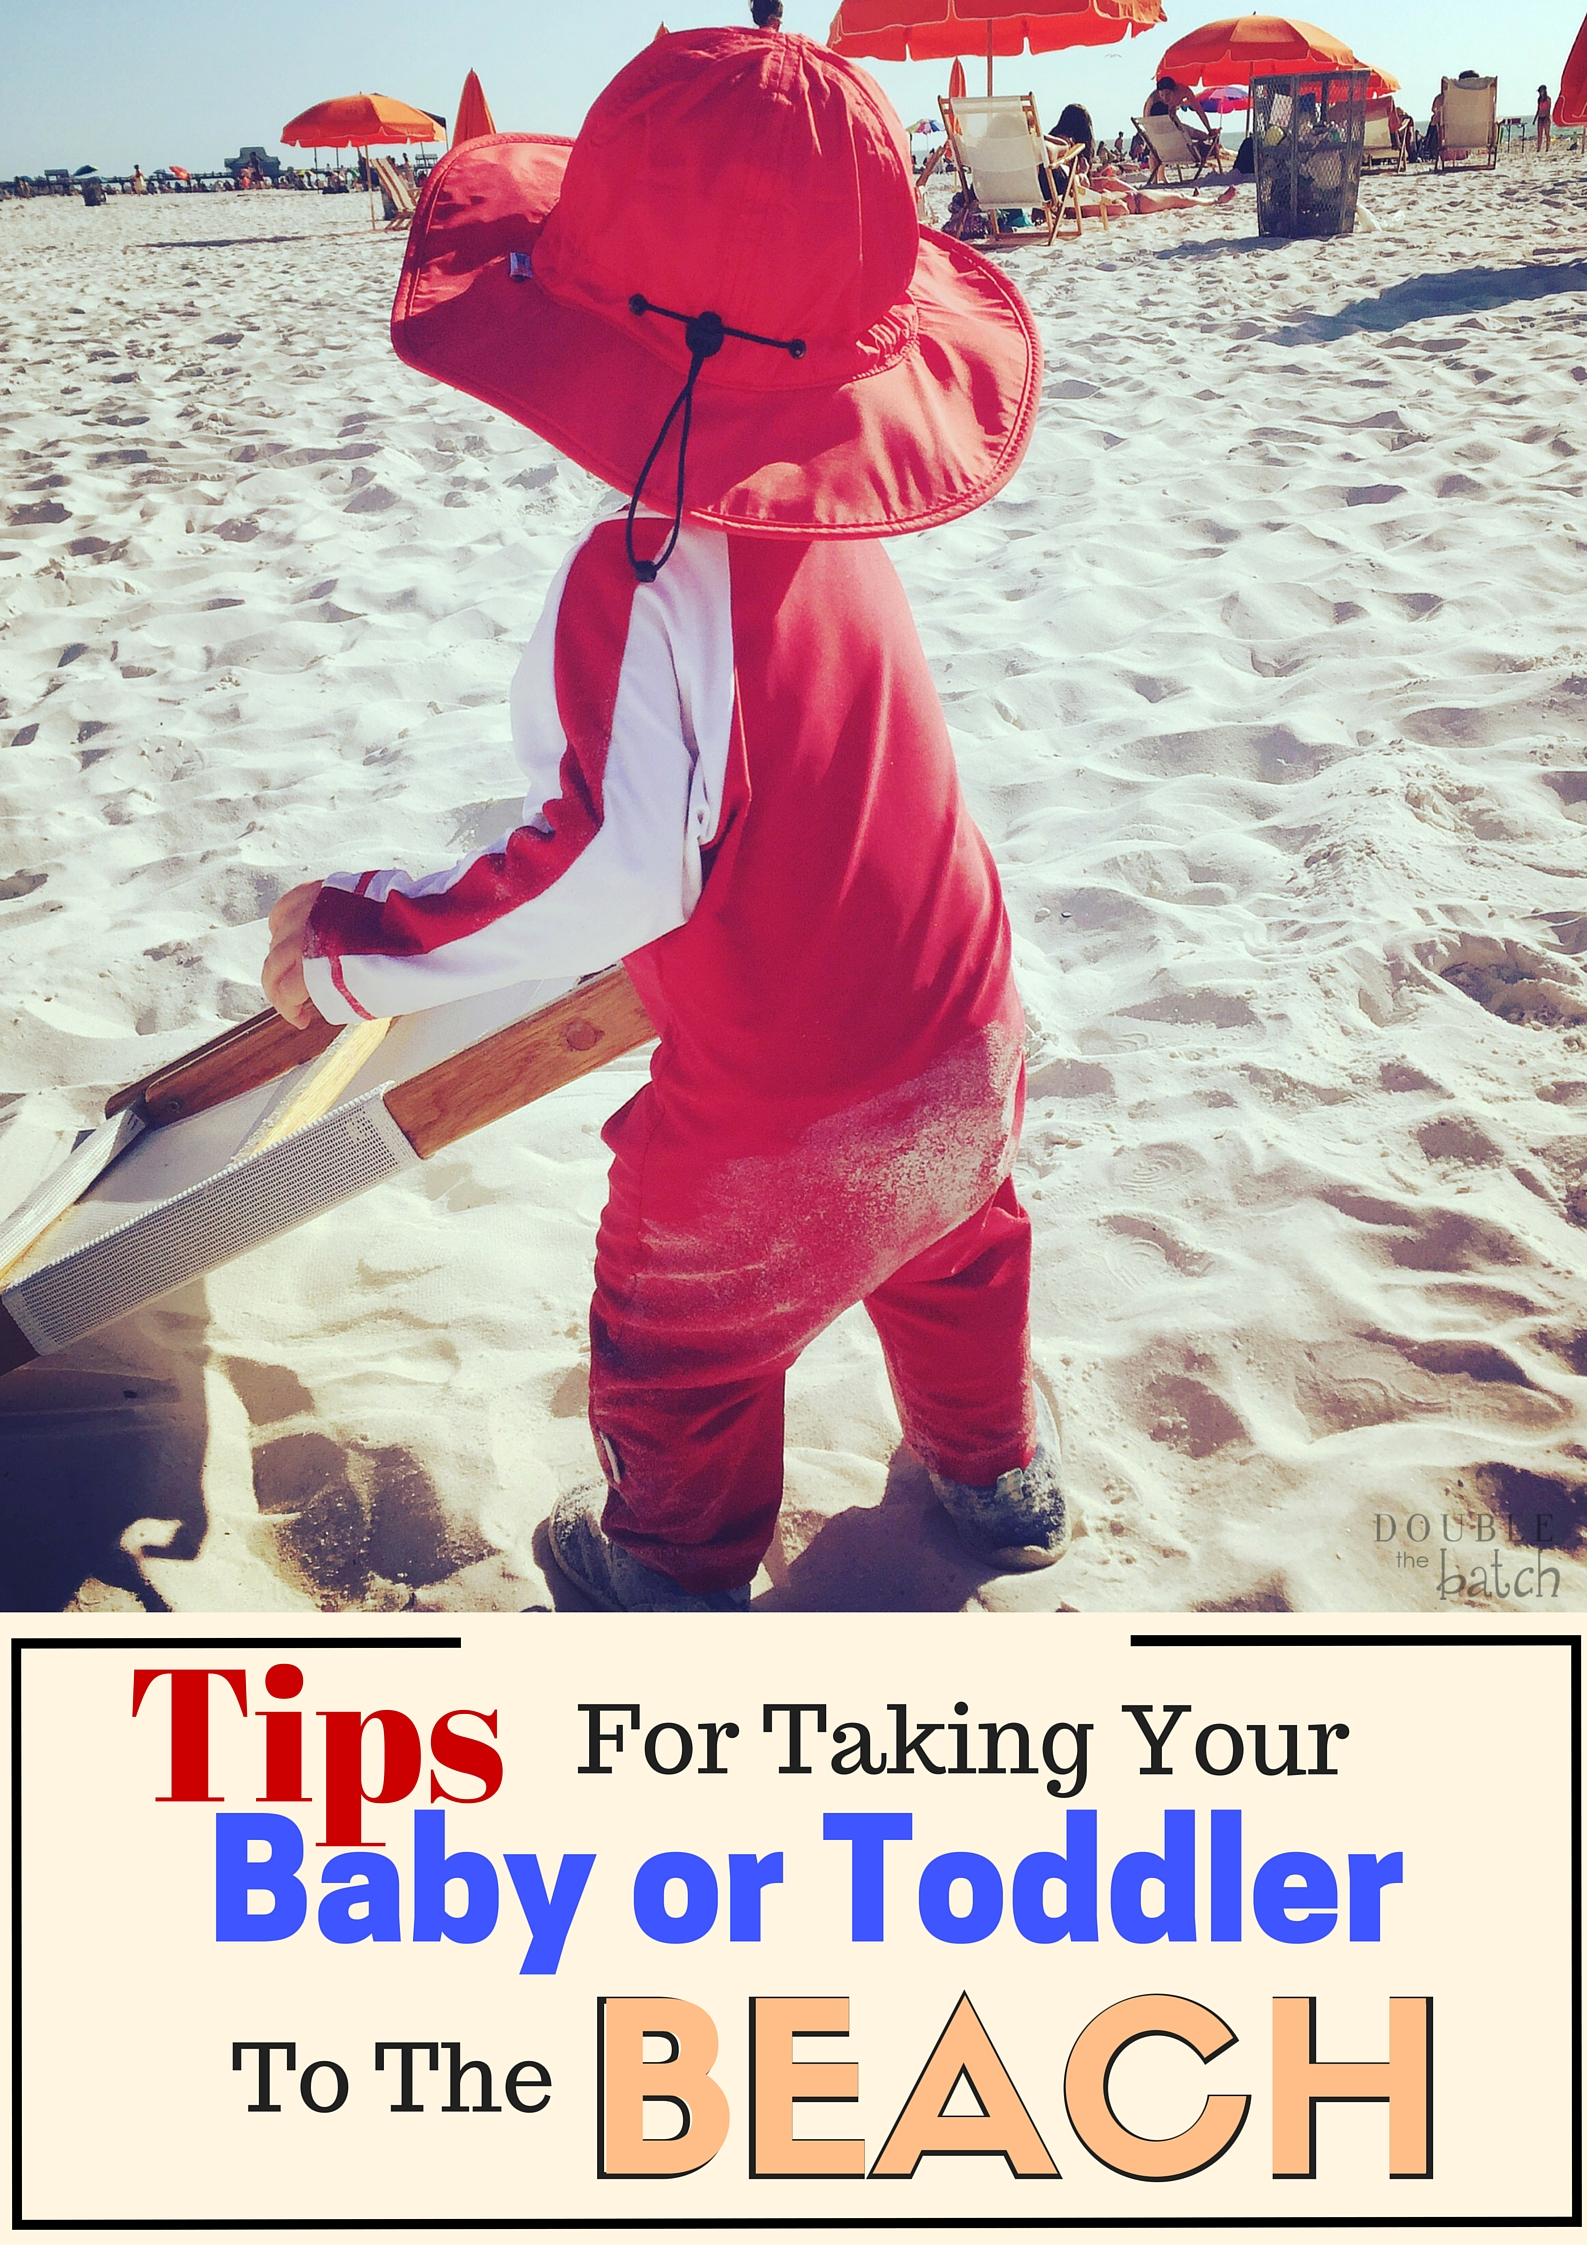 Tips for taking your baby to the beach